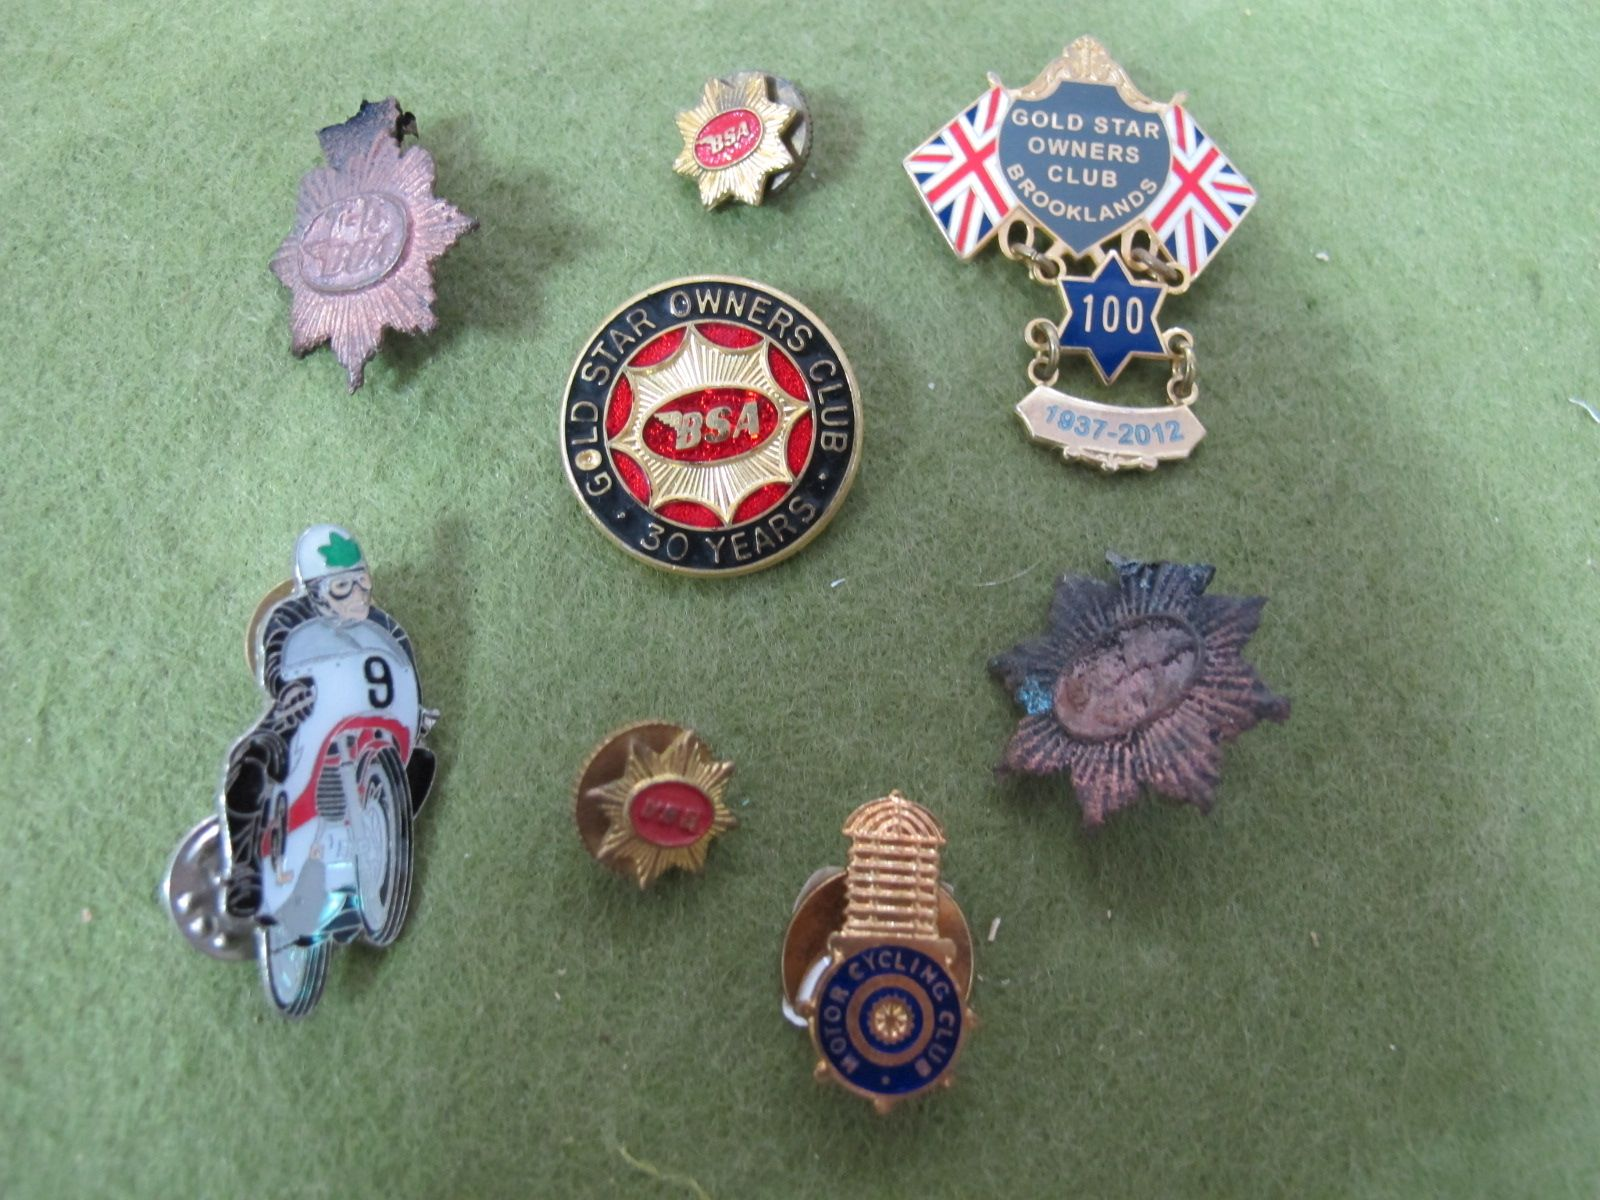 Lot 21 - Mid XX Century and Later Badges, to include BSA gold star owners club, with 100 year bar with